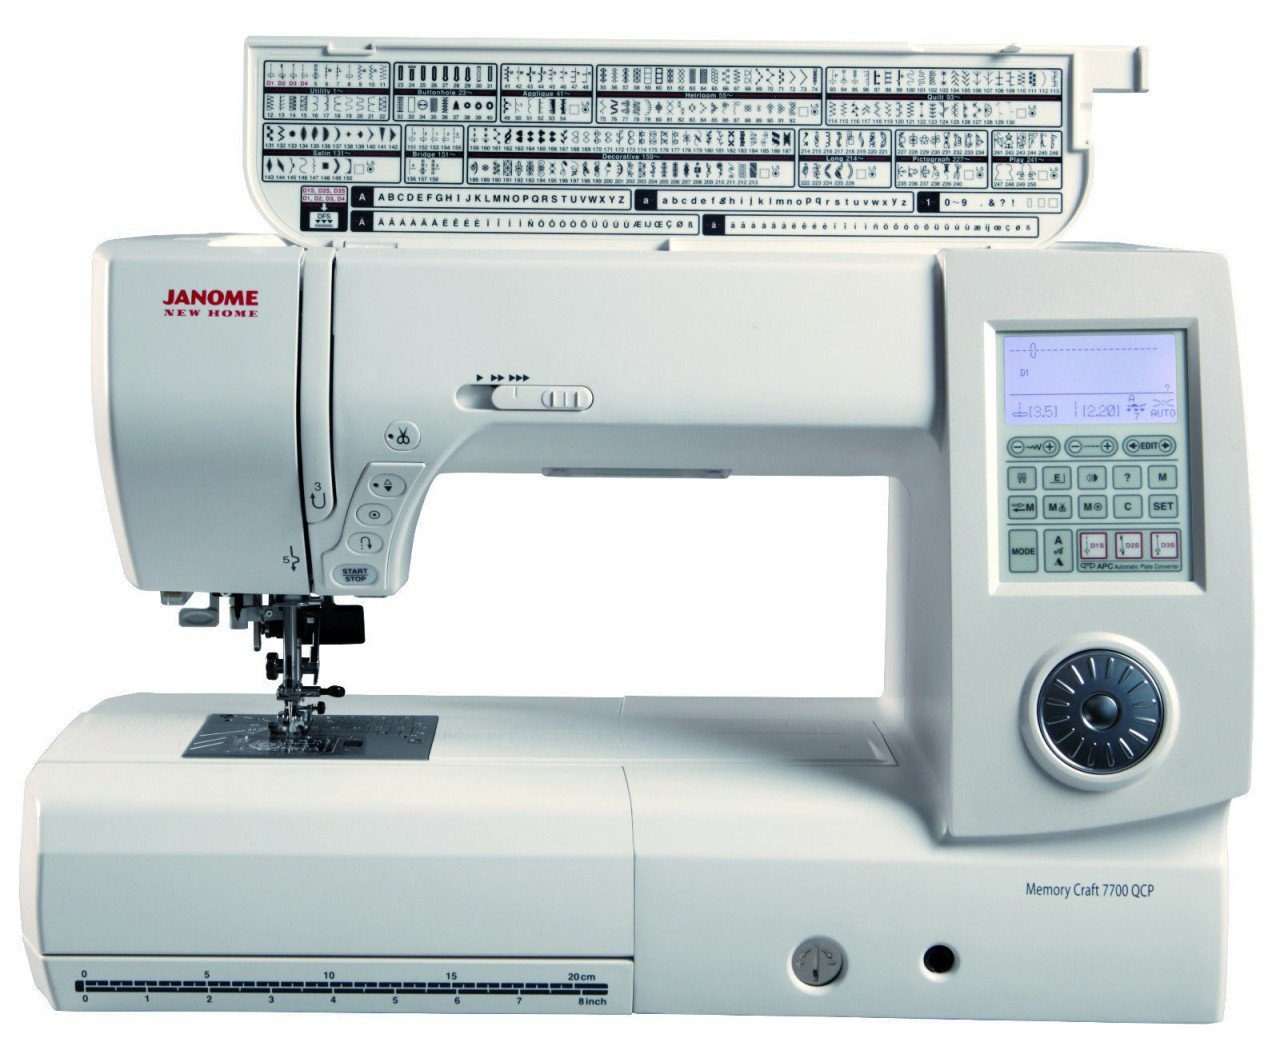 janome 7700 sewing and quilting machine review quilter 39 s